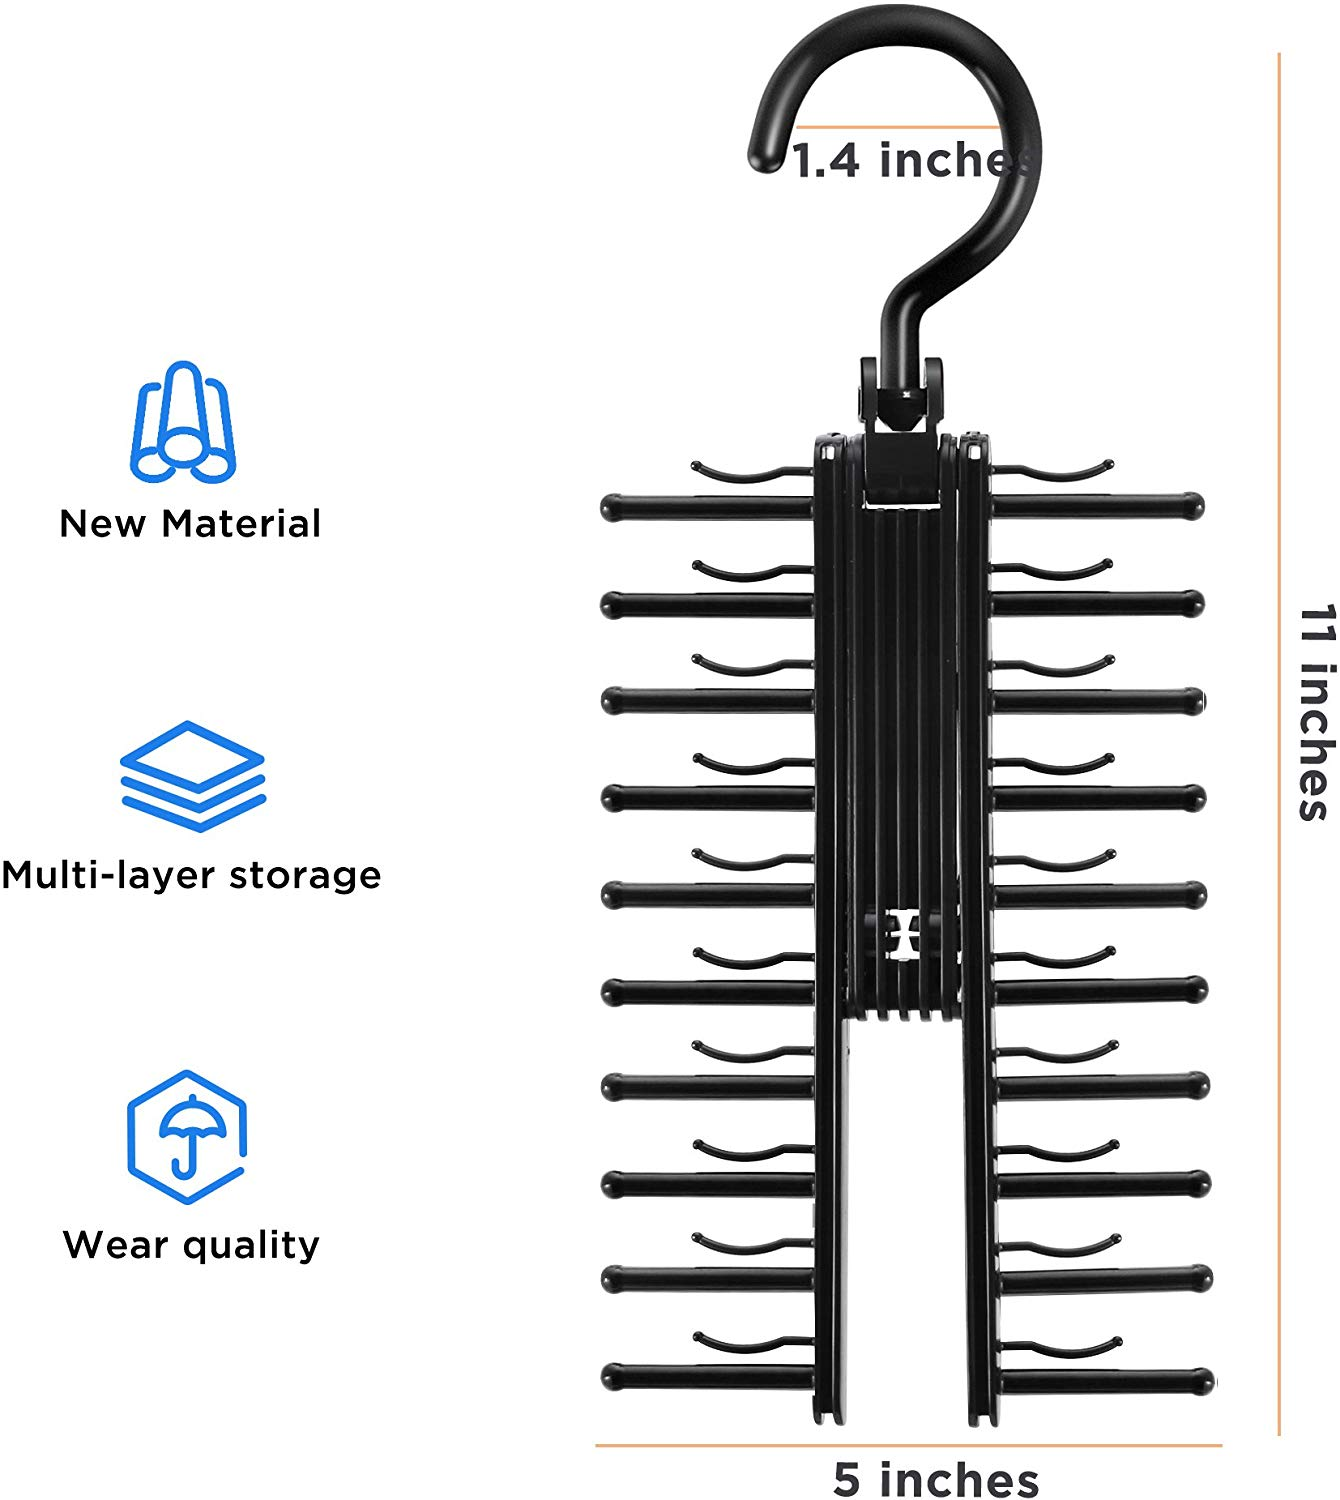 Black NIUBI from US Shipping!! 2 PCS See Everything Cross X 20 Tie Rack Holder,Rotate to Open//Close Tie and Belt Hanger with Non-Slip Clips,360 Degree Swivel Space Saving Organizer